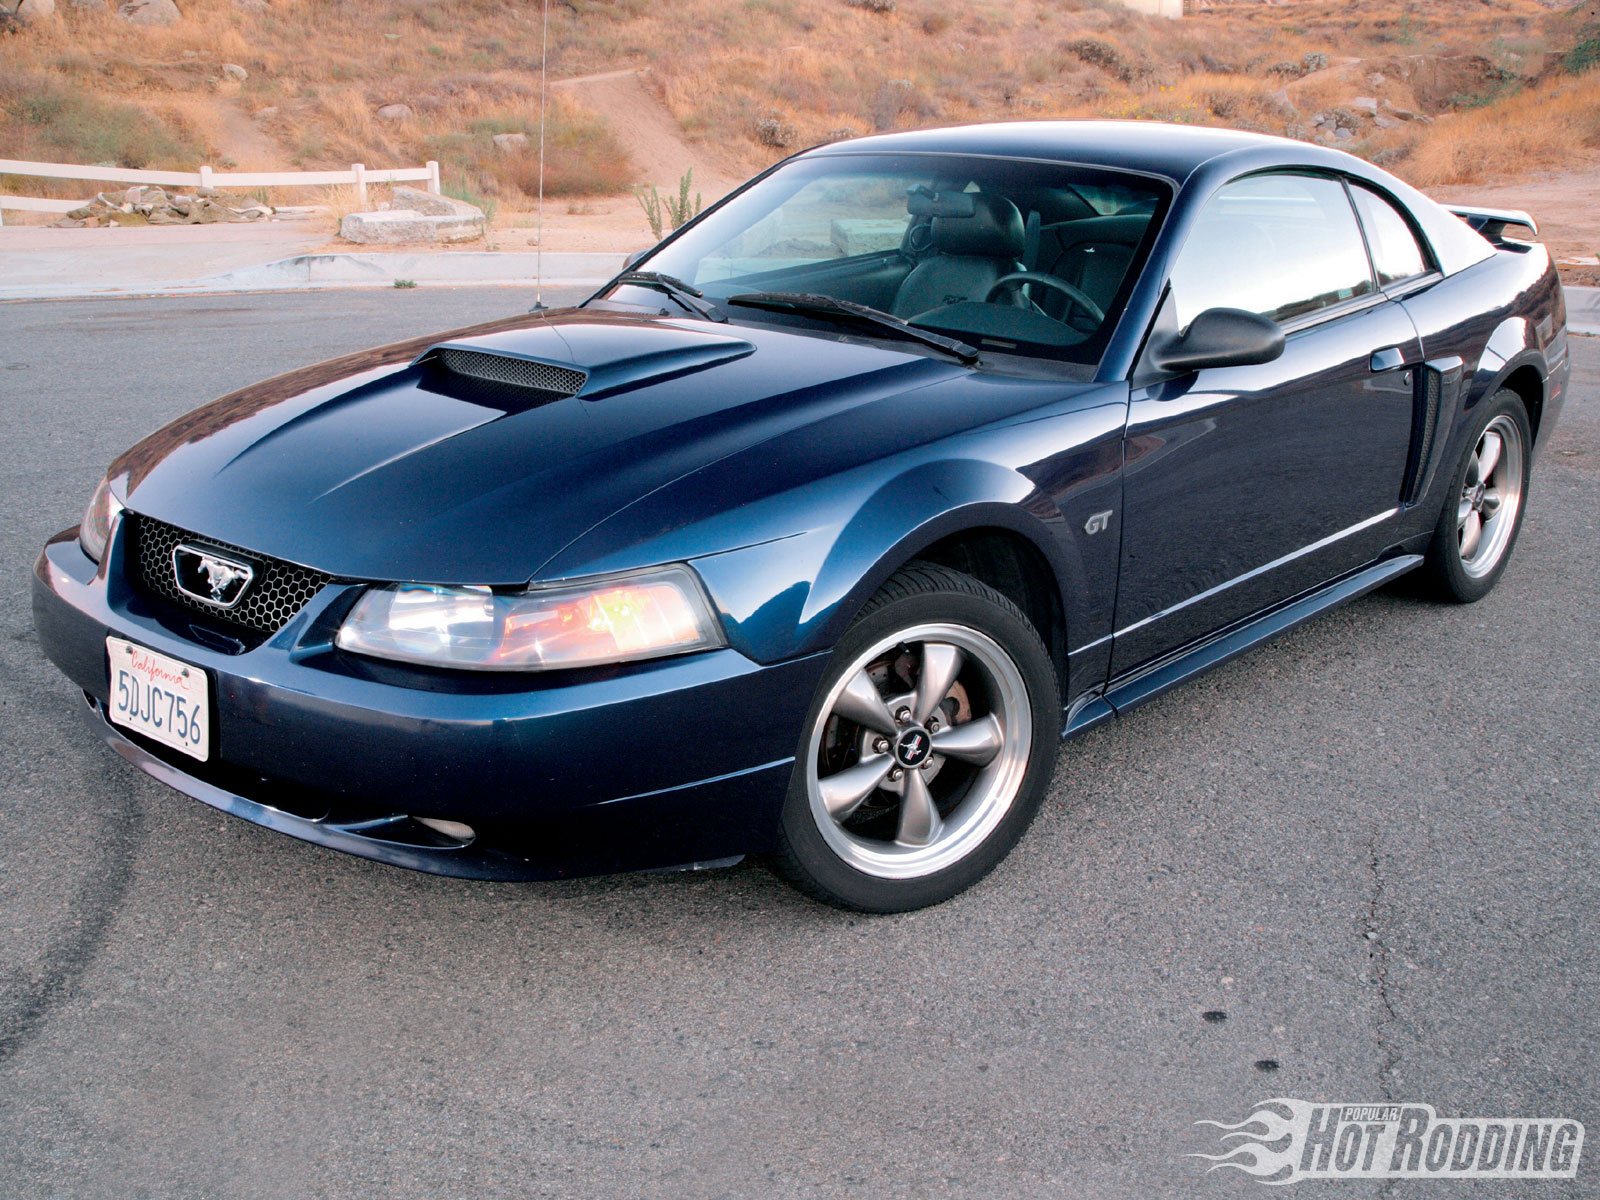 2003 ford mustang pony | vivantenature. Com.